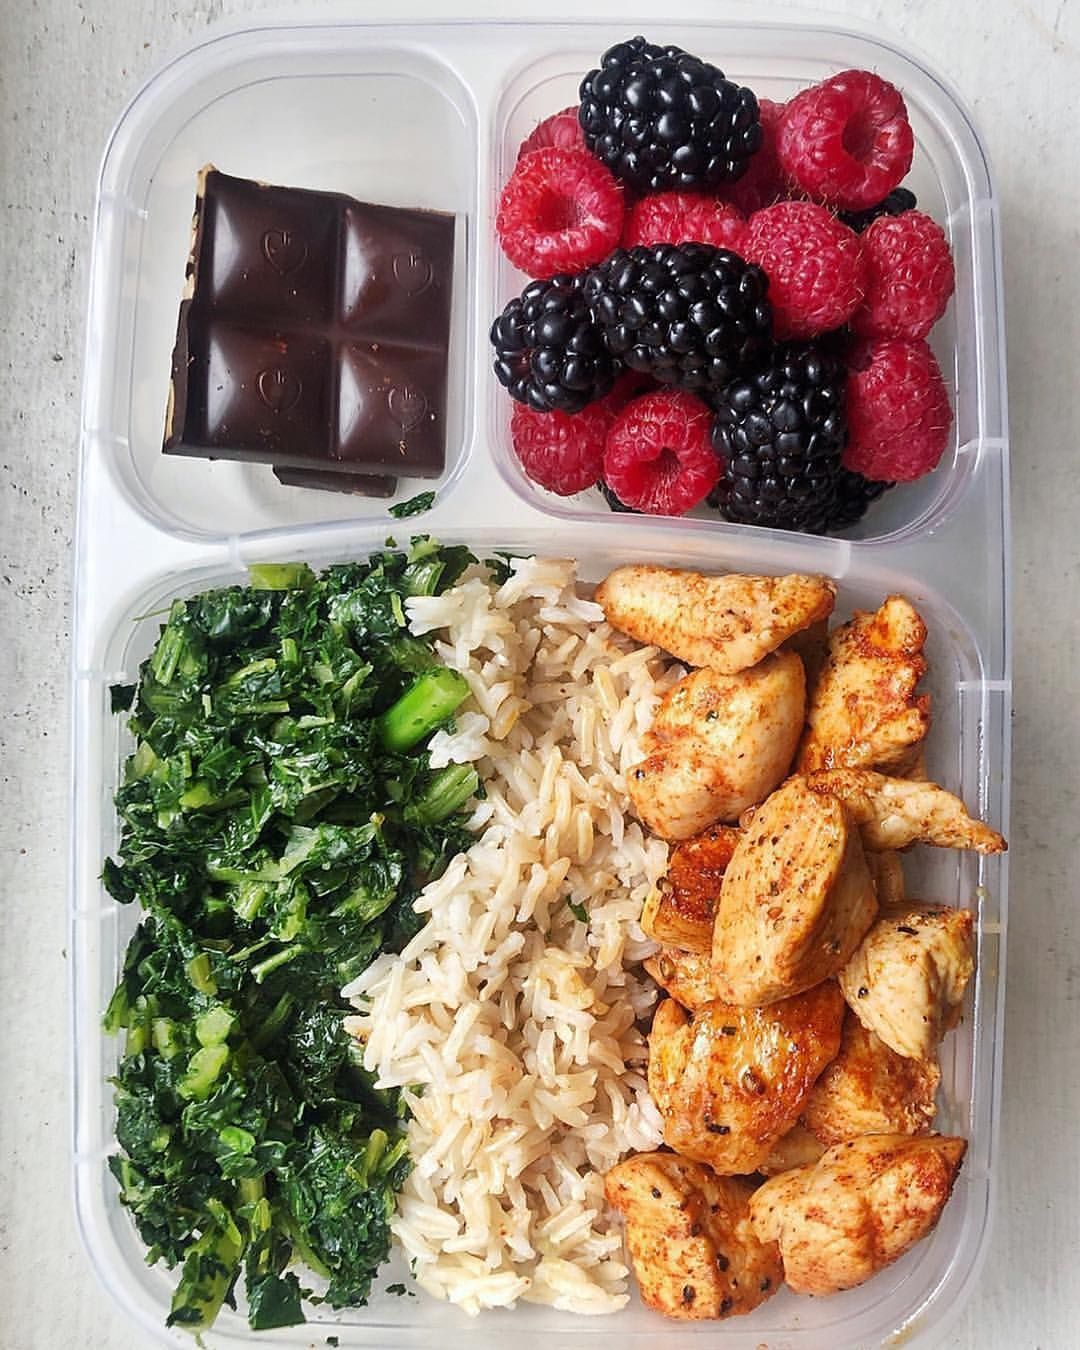 21+ Meal Prep Ideas for Healthy of Your Body & Finance #healthyfoodprep